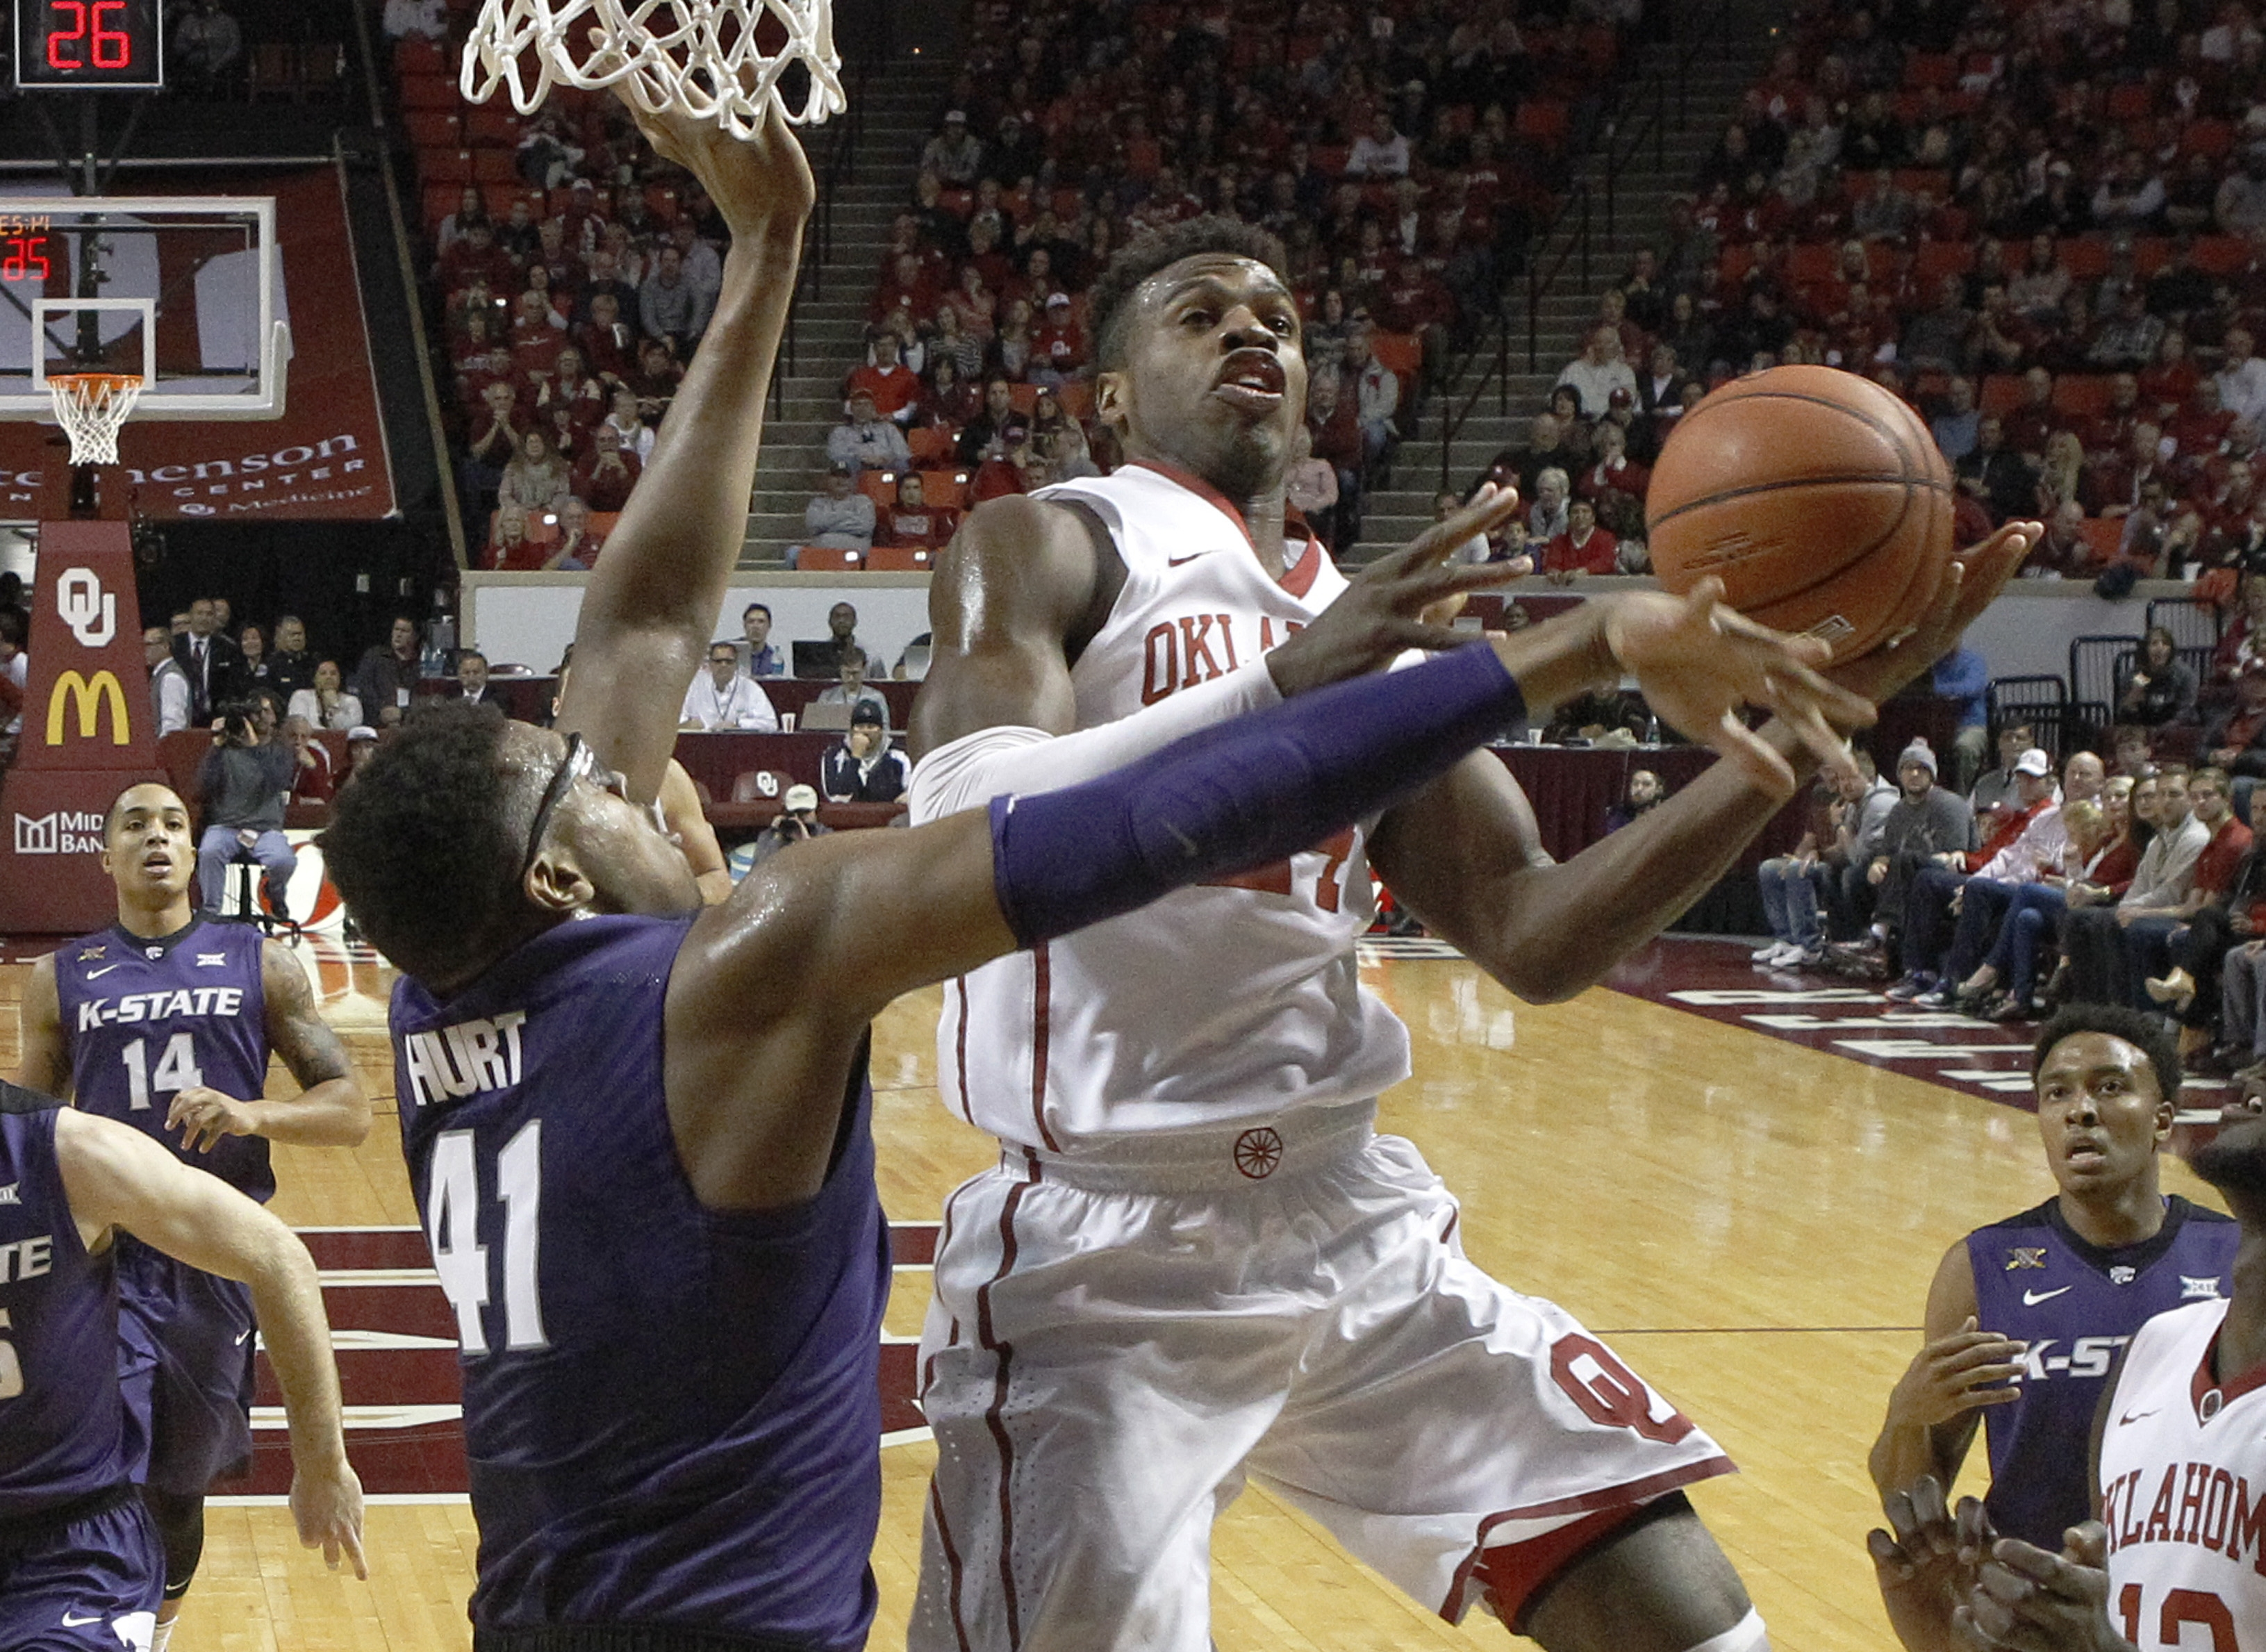 Oklahoma guard Buddy Hield, front right, goes up to shoot defended by Kansas State forward Stephen Hurt (41) in the first half of an NCAA college basketball game in Norman, Okla., Saturday, Jan. 9, 2016. (AP Photo/Sue Ogrocki)